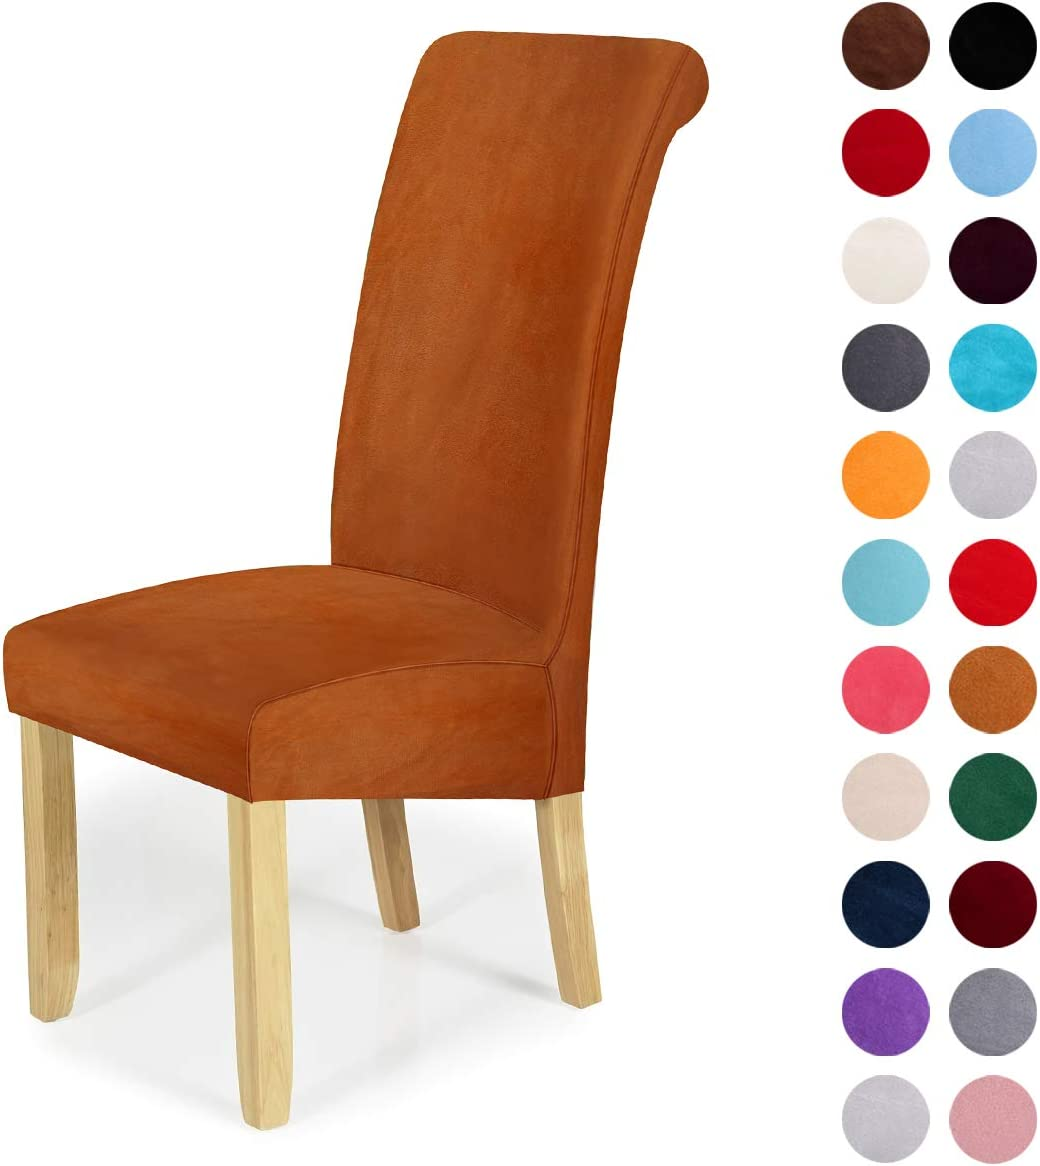 Velvet Stretch Dining Chair Slipcovers - Spandex Plush Short Chair Covers Solid Large Dining Room Chair Protector Home Decor Set of 2, Camel